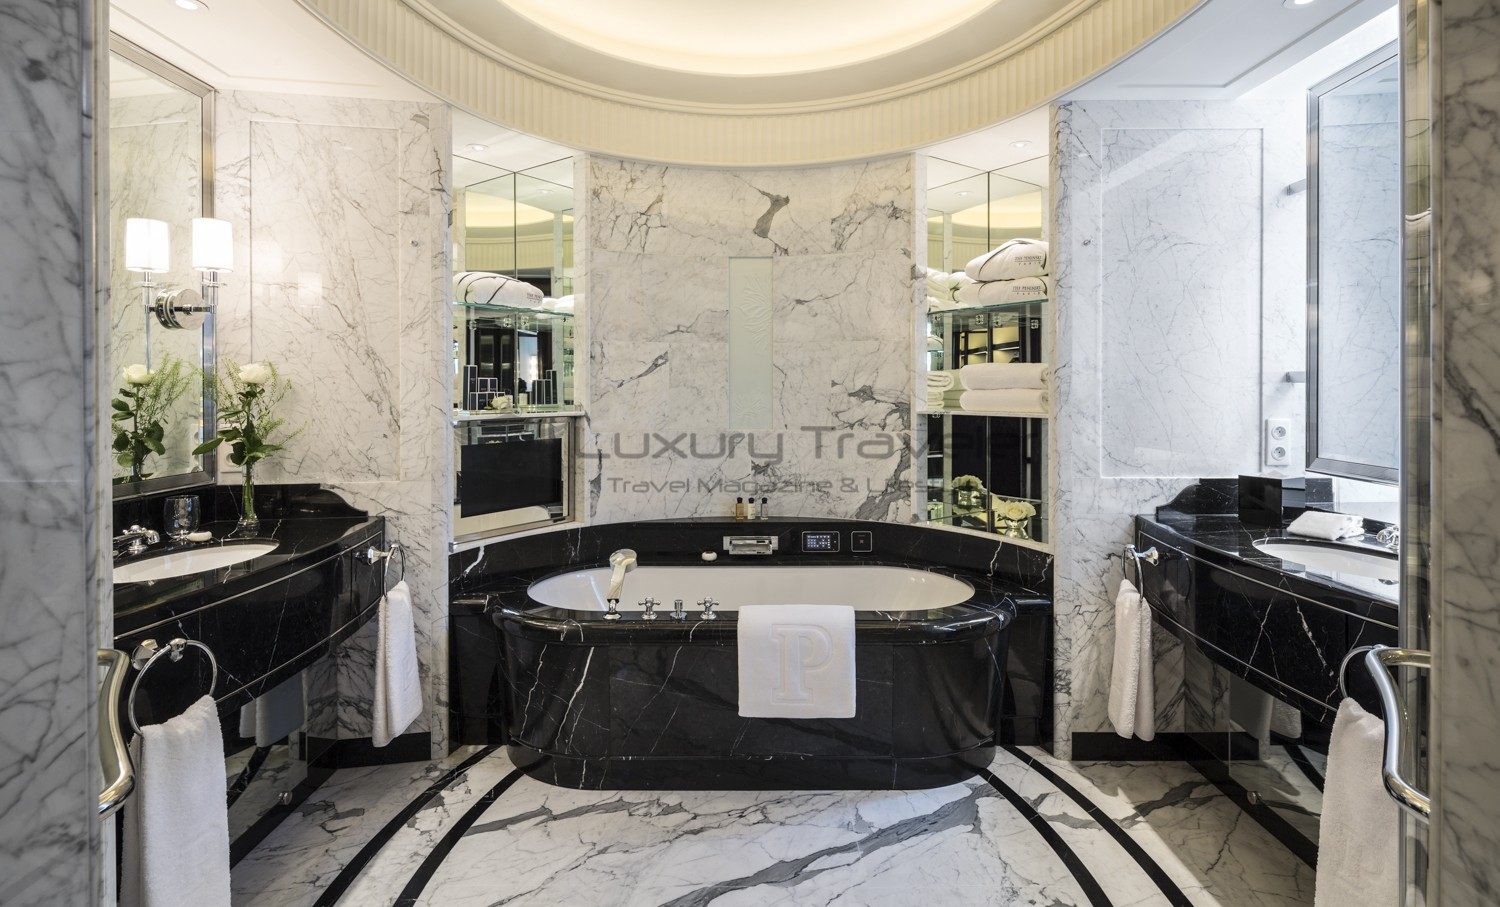 The peninsula luxury 5 star hotel paris luxury traveler for Hotel des bains paris 14e